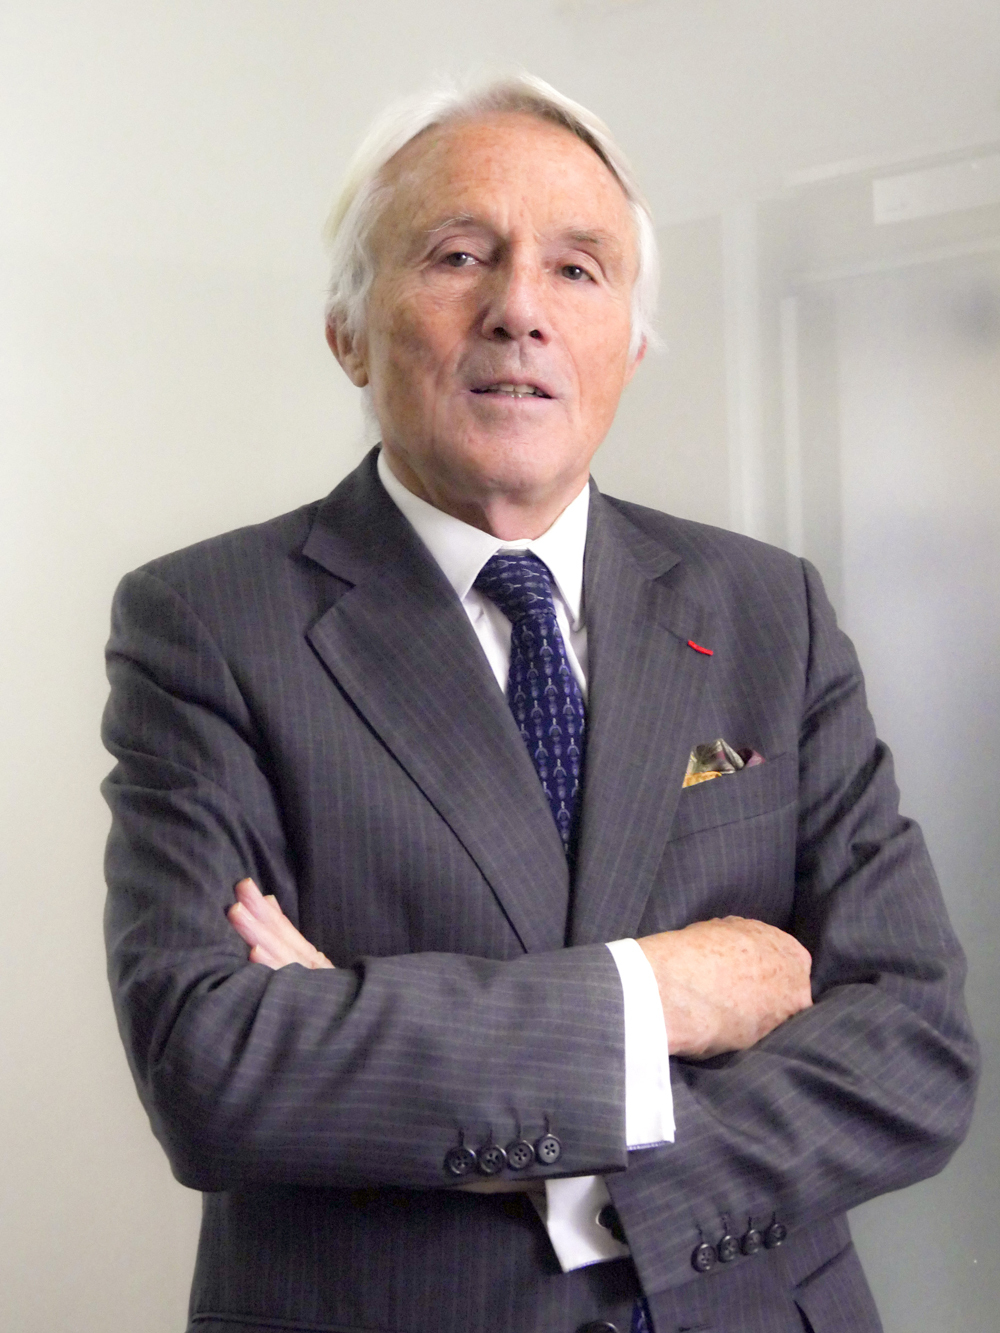 Alain de Rouvray, CEO, ESI Group. (Photo: Business Wire)